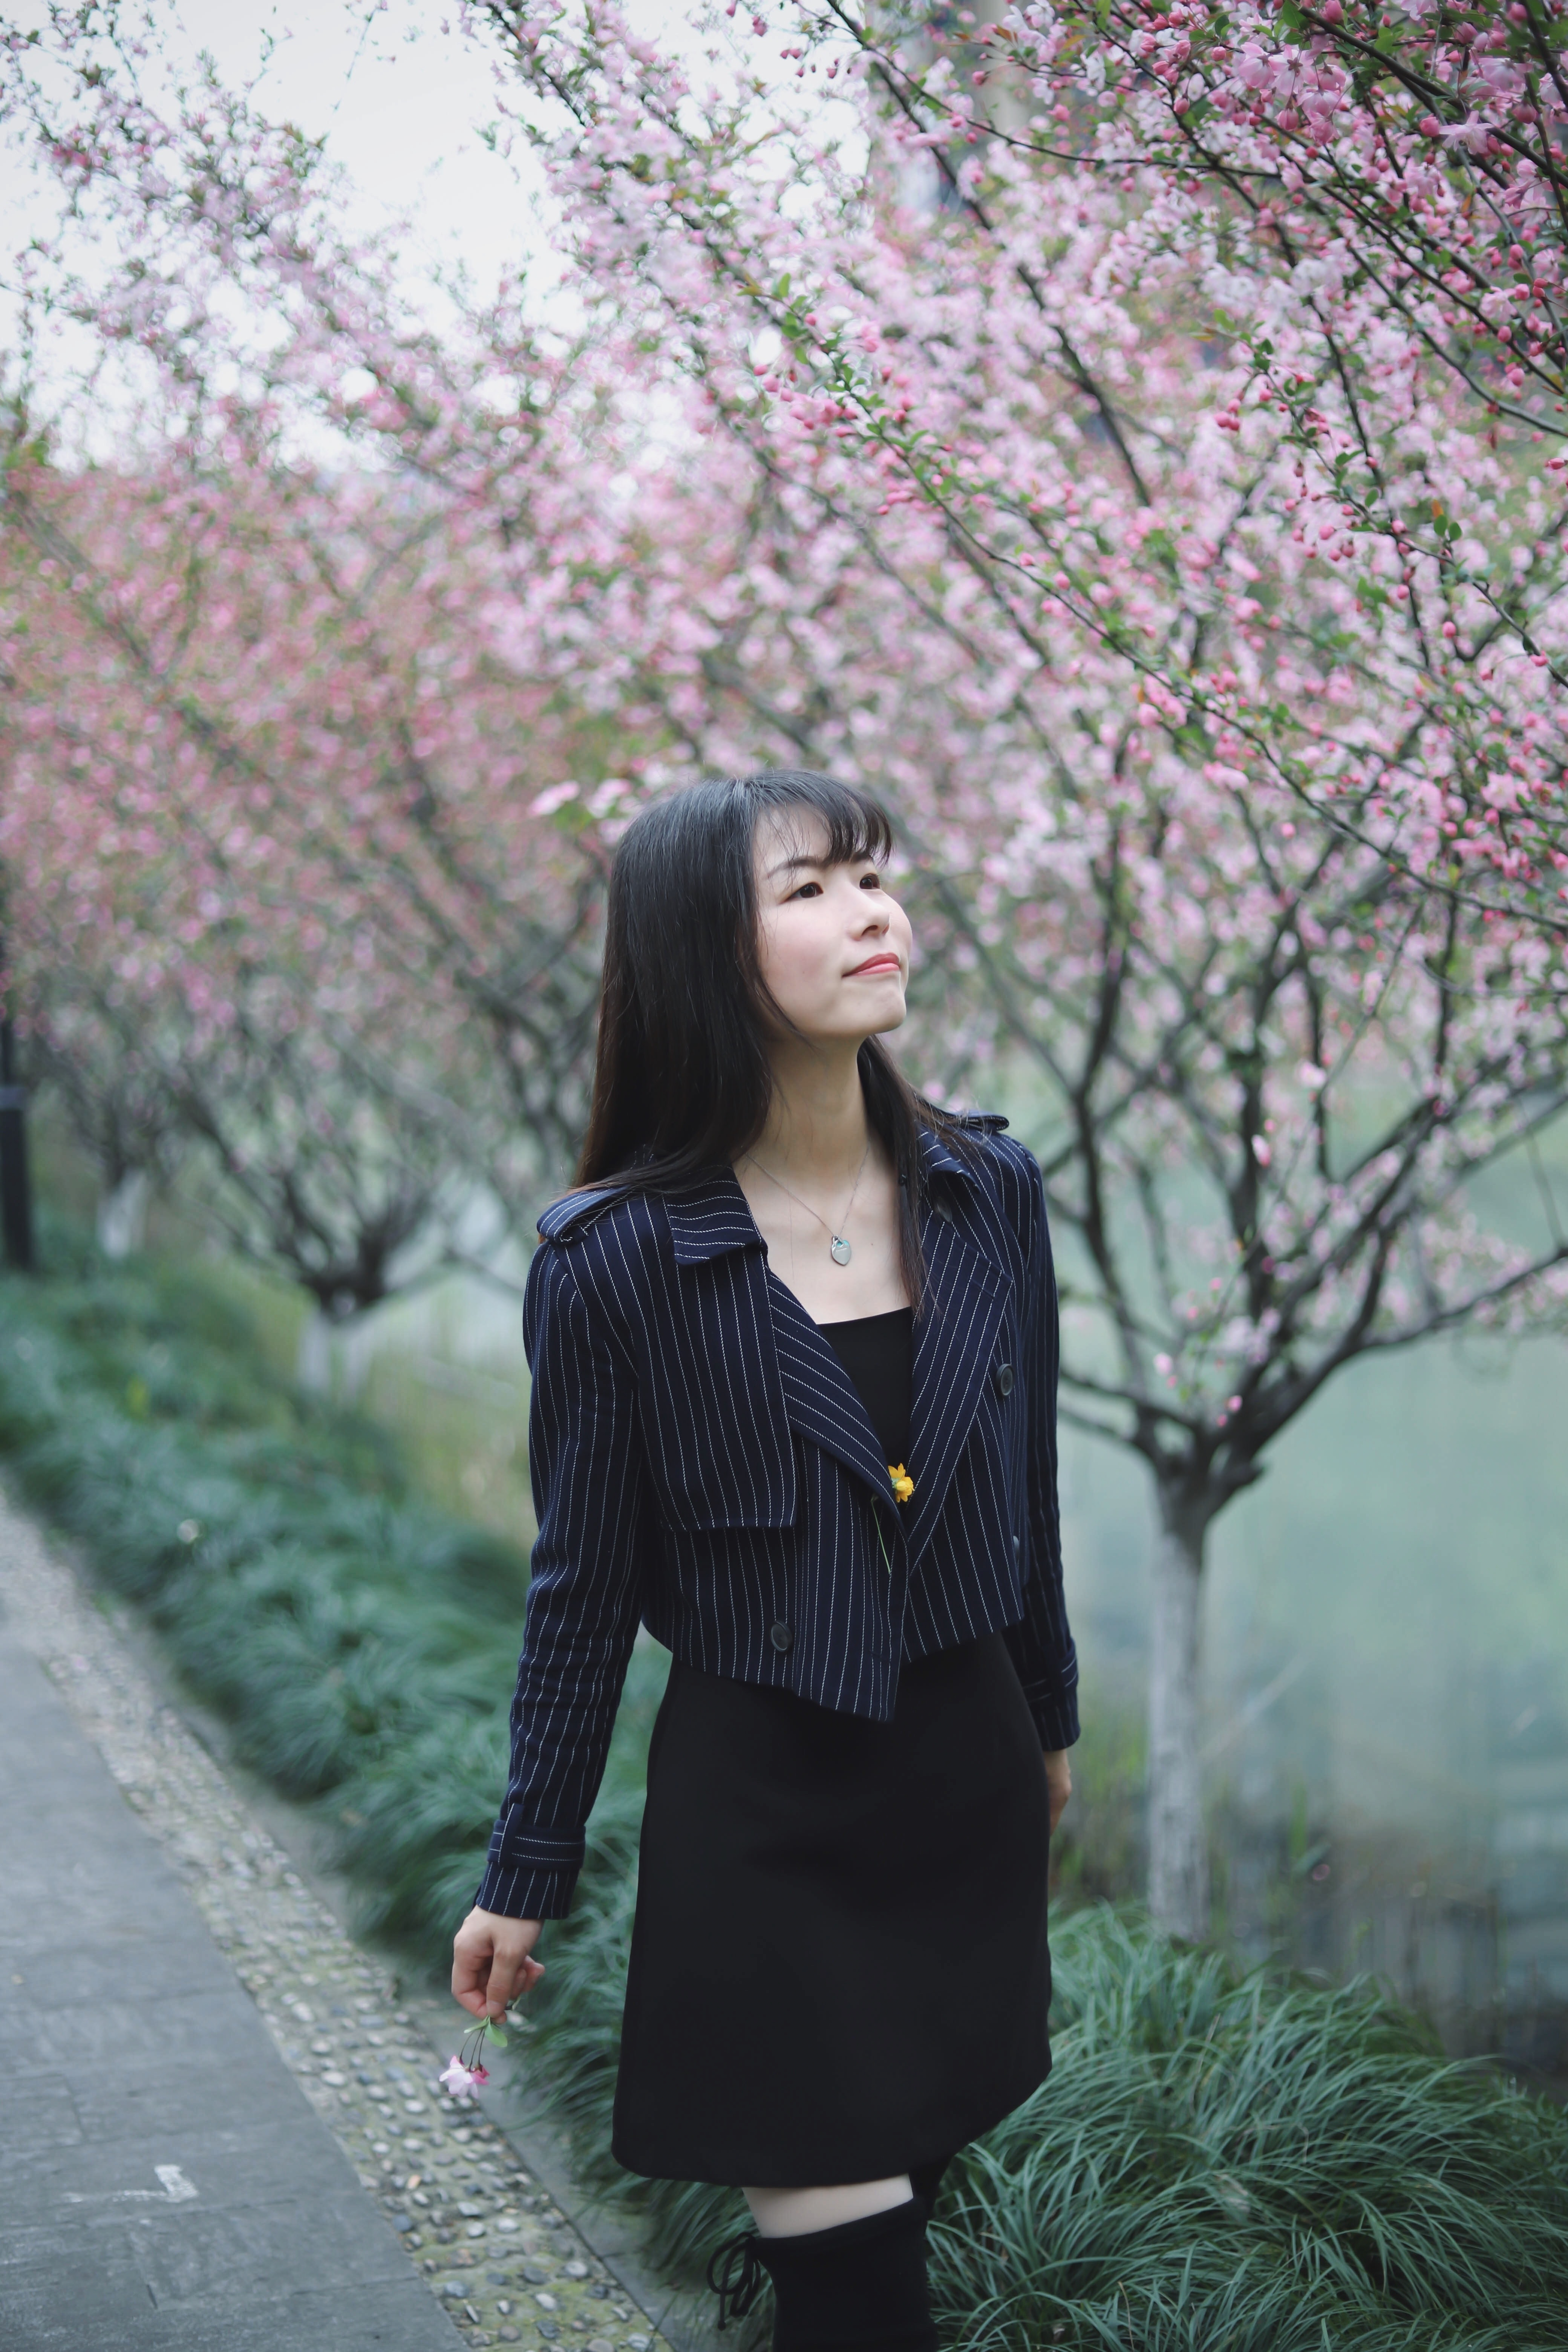 woman walking on a road with cherry blossoms